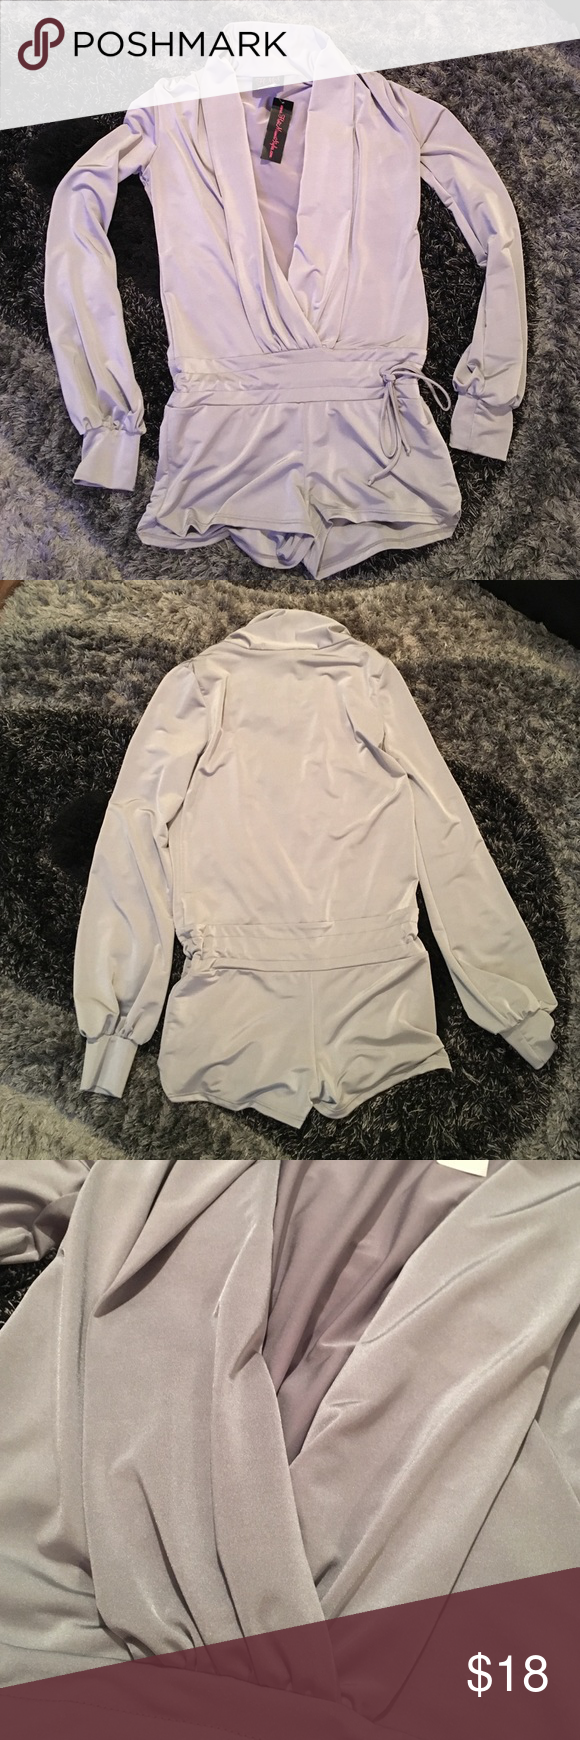 Metallic silver deep v Romper Brand new, NEVER WORN. Metallic silver romper with a deep v neck. Long sleeves, and tie around he waist to make tighter or looser. Shiny stretchy material. The romper is pretty short as you can see in the picture. Other